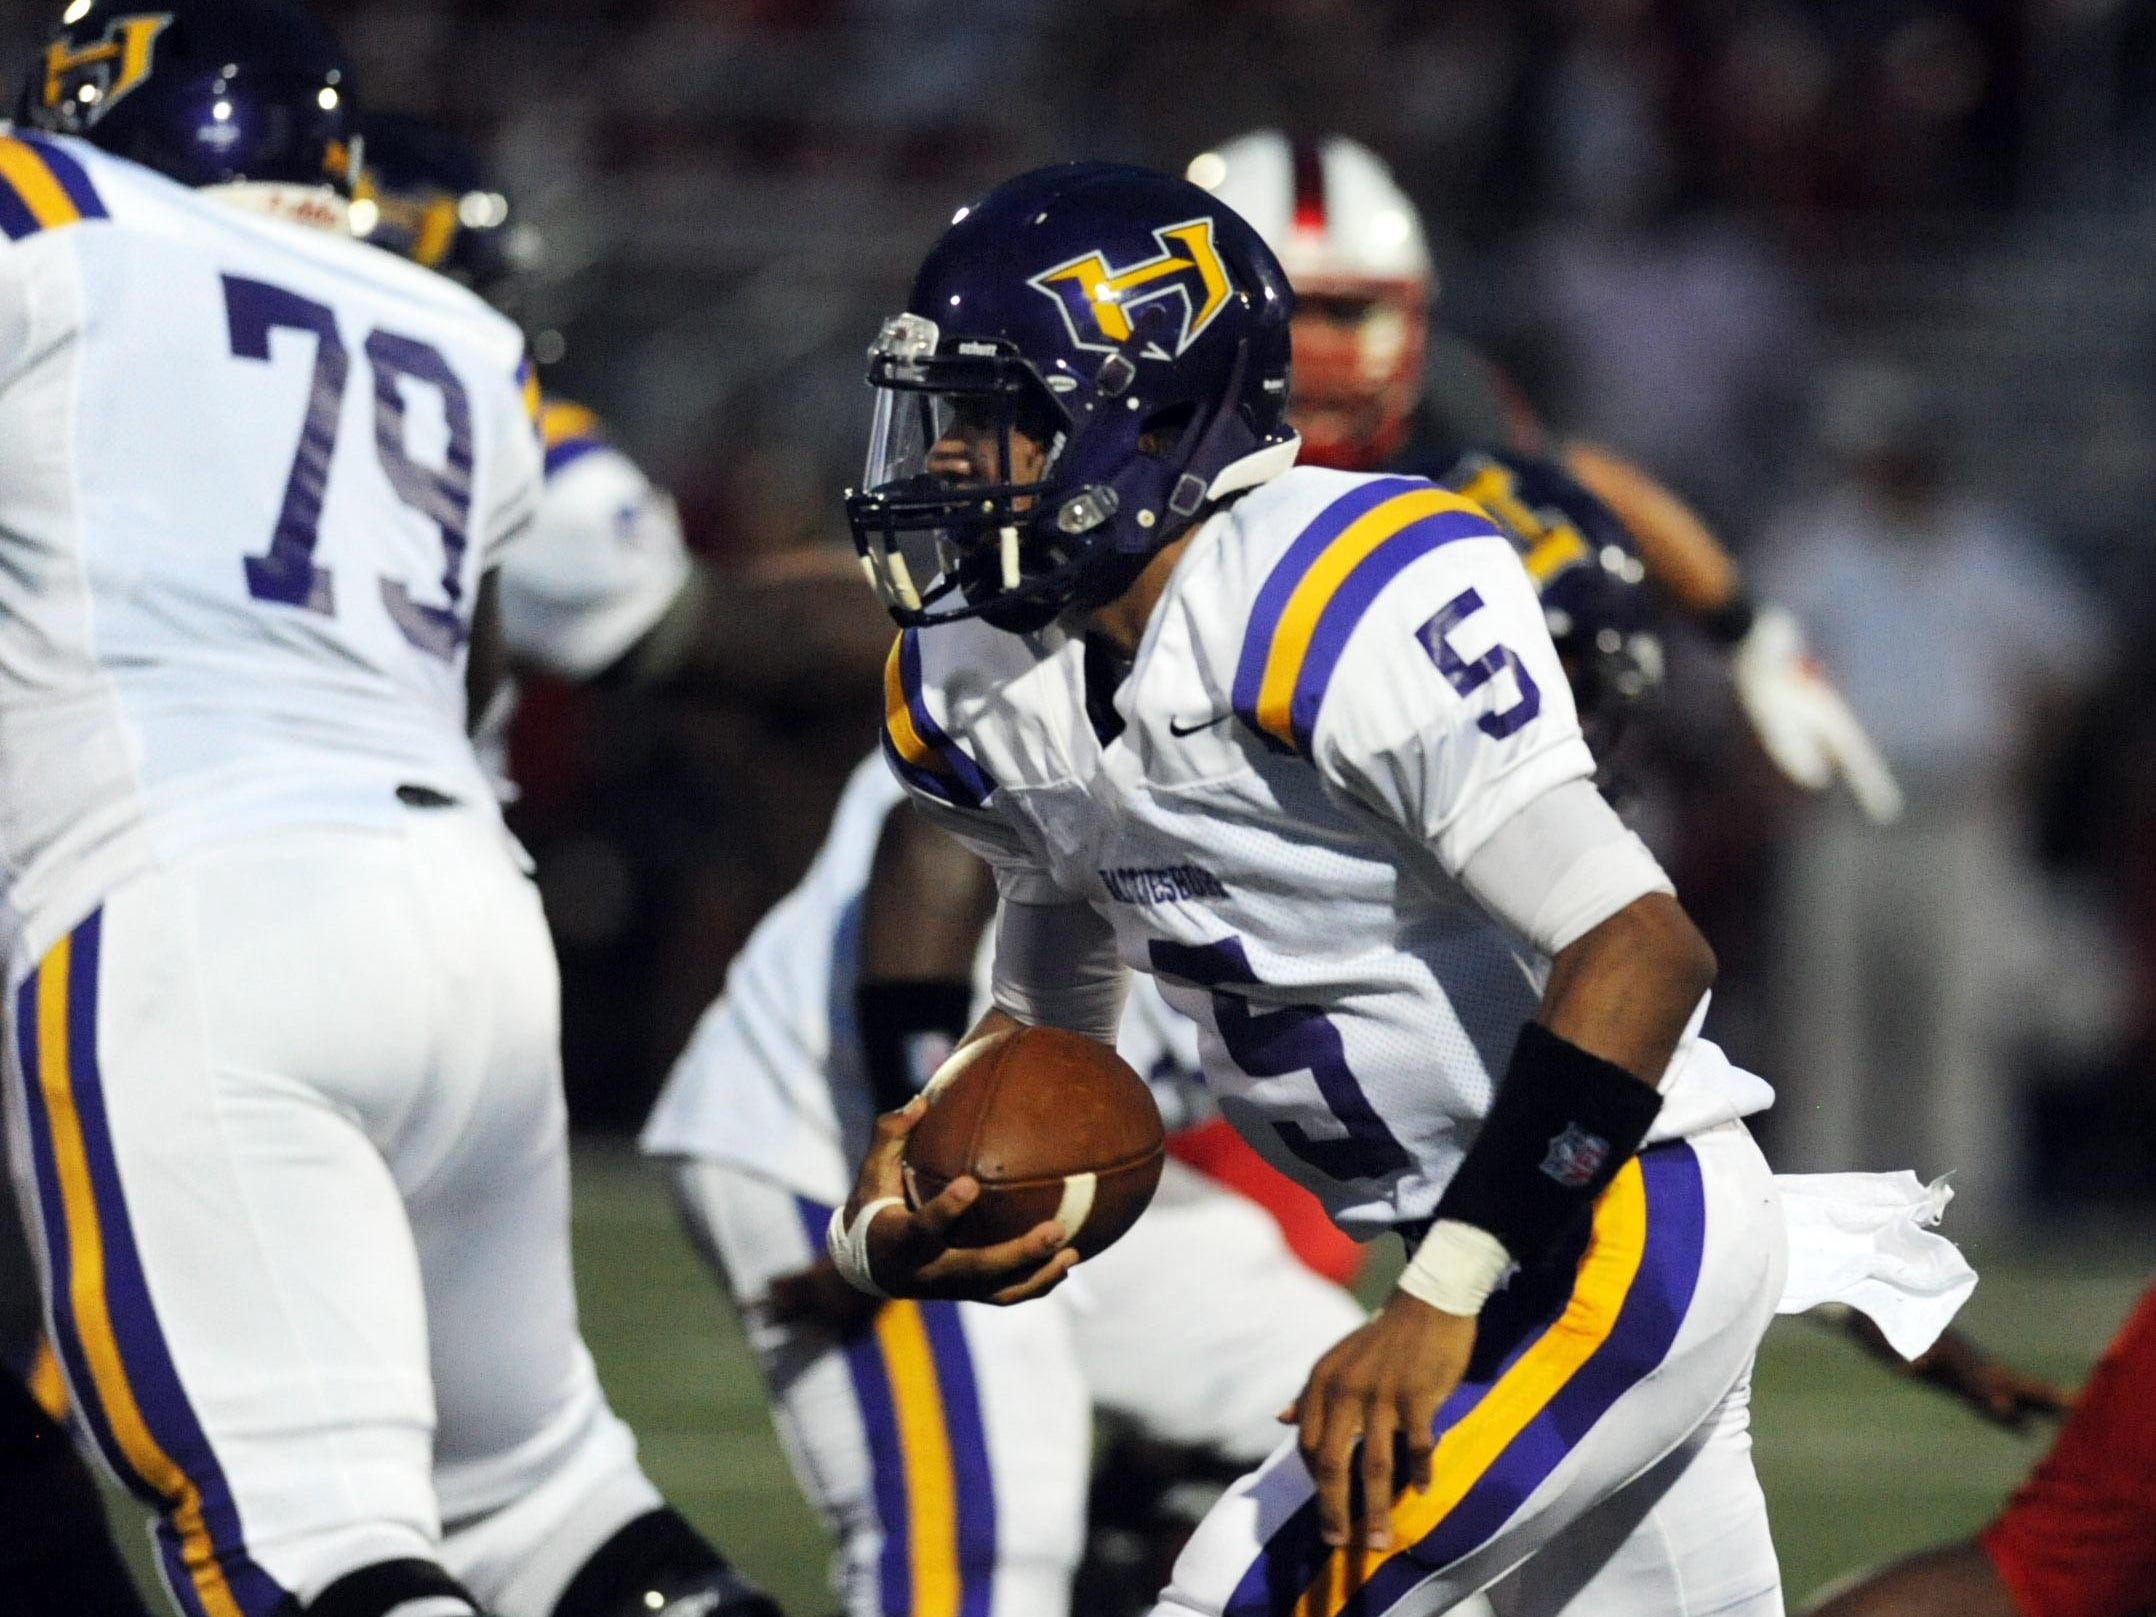 Julian Conner's stock is on the rise after rallying Hattiesburg past Laurel 34-32 last week.